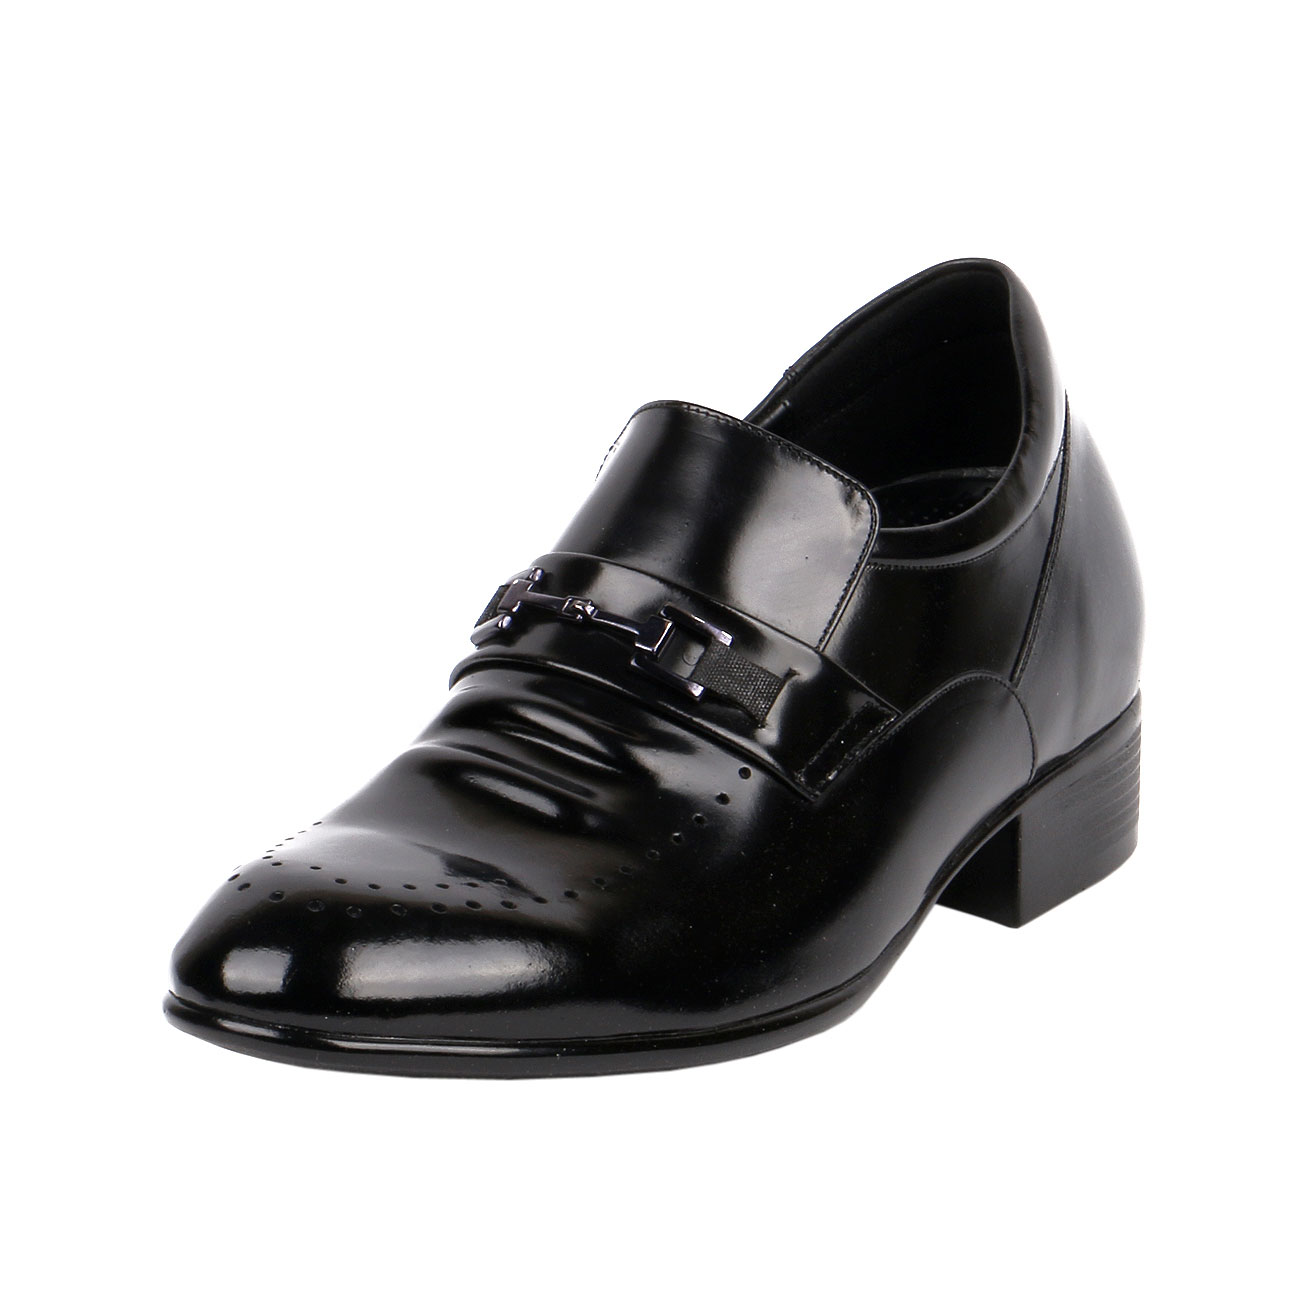 KL613, Limited Comfort  Wide With Loafer Executives To Glamorize On Special Occasions-1